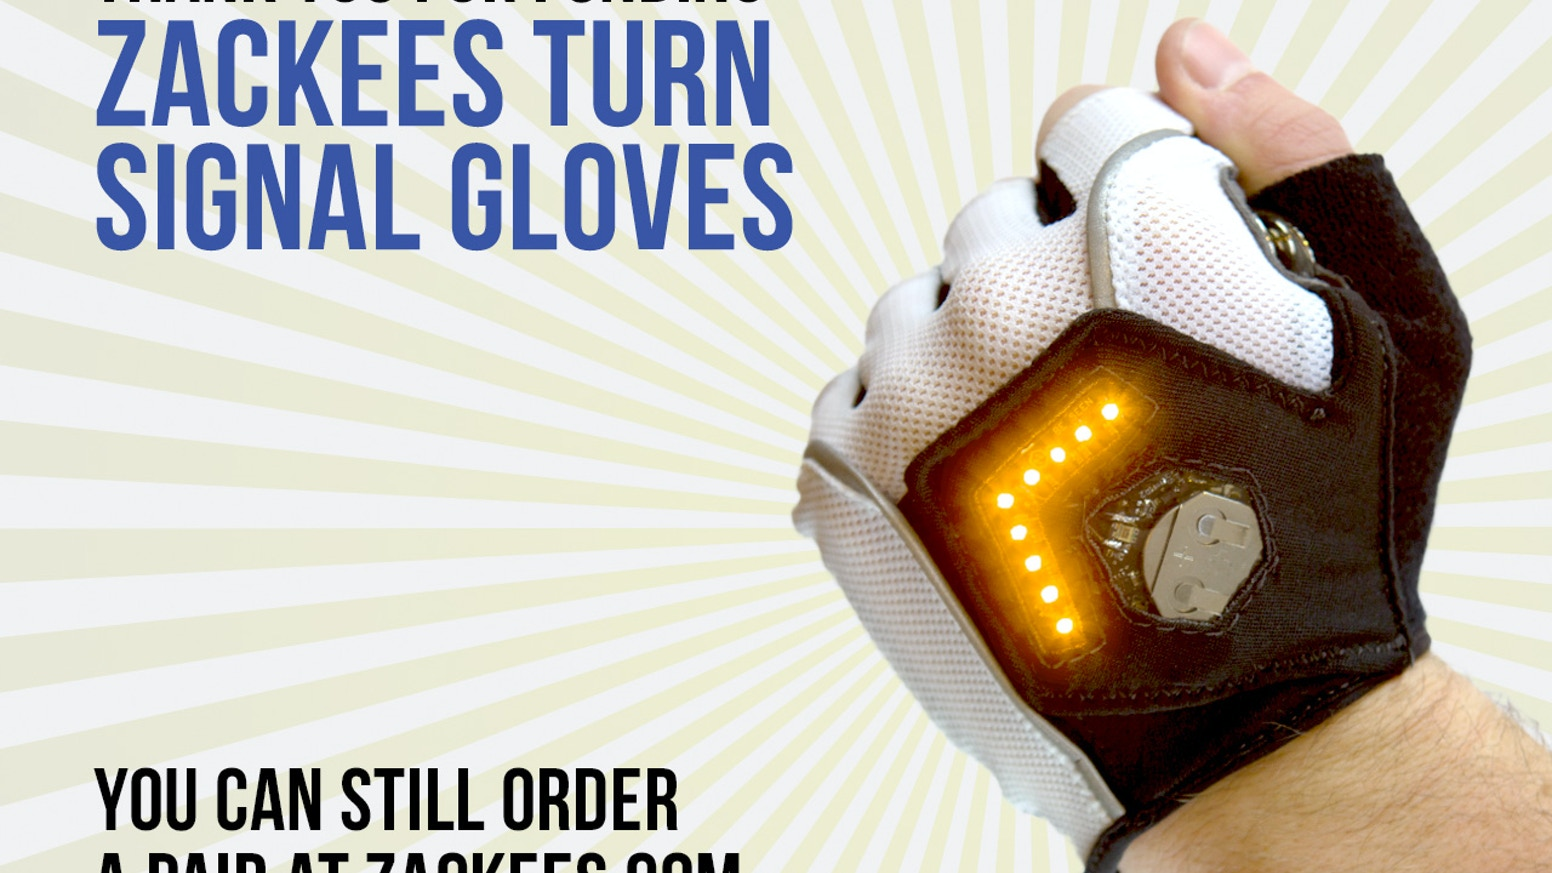 The safest and most technologically advanced pair of cycling gloves ever made. Period.